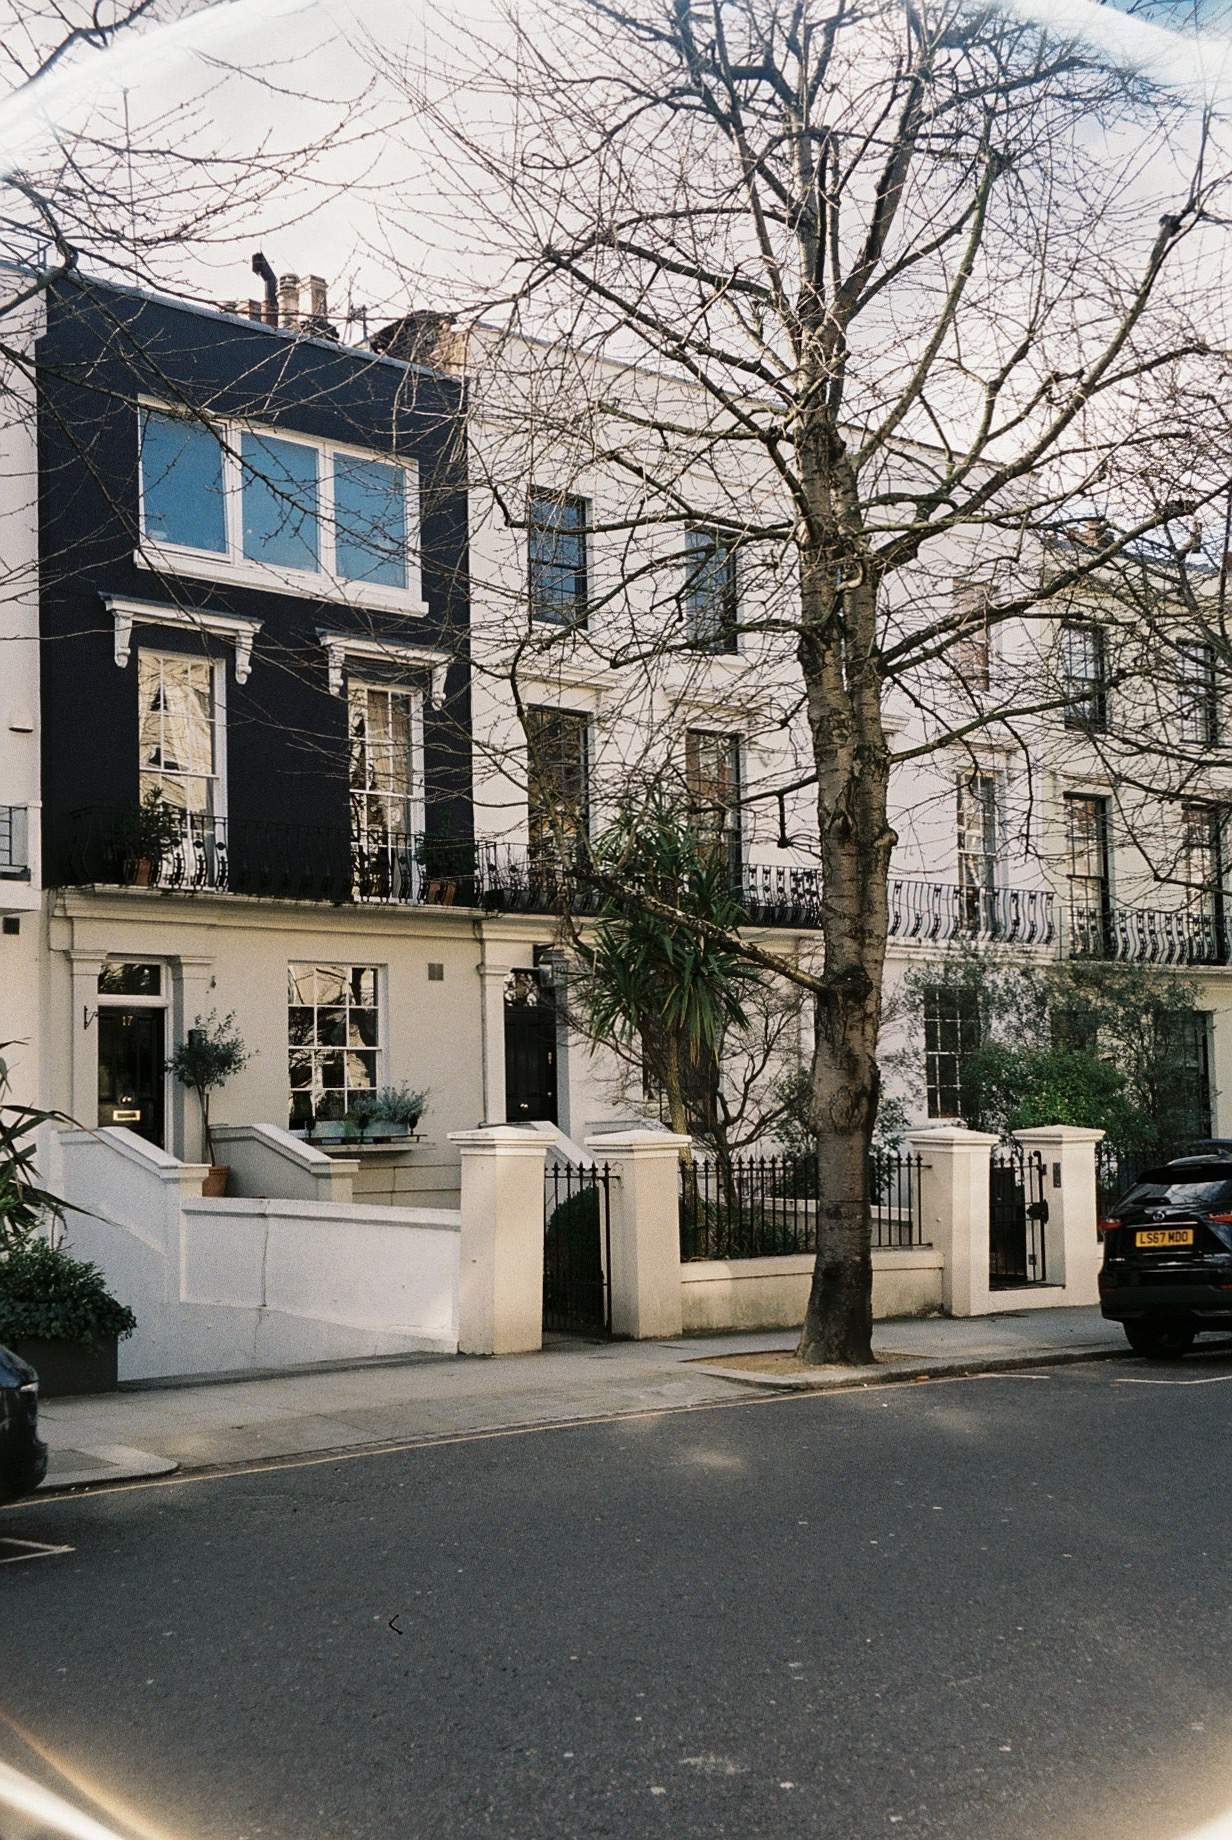 Notting hill and its immaculate townhouses. / Notting hill e as suas Imaculadas fachadas.